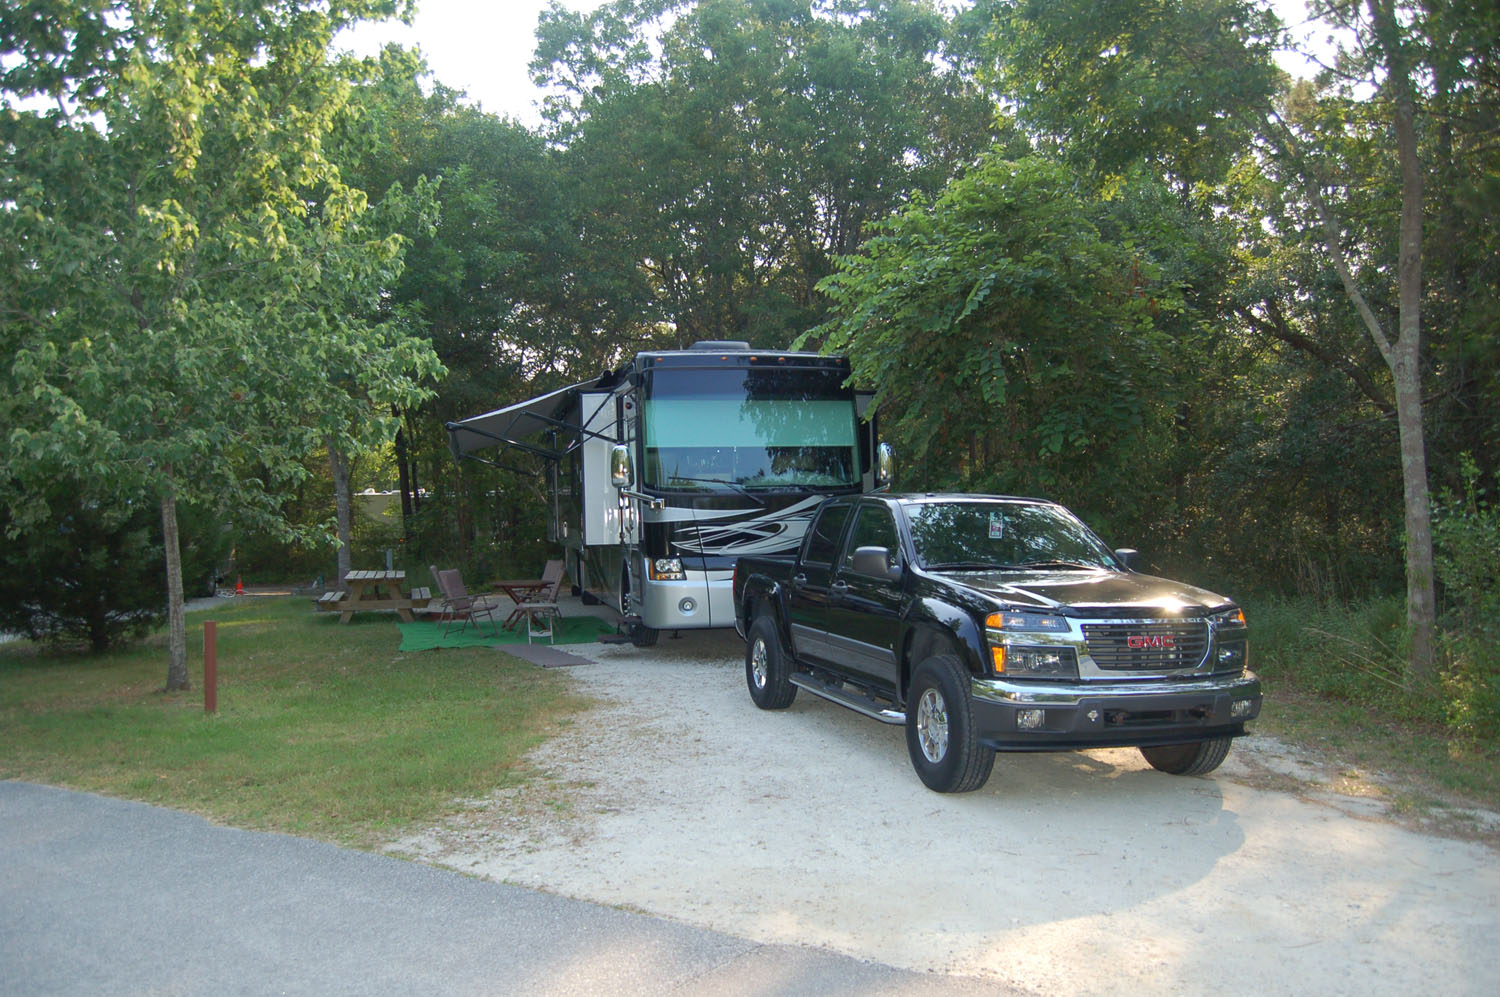 Image of campsite #59 at the Campground at James Island County Park